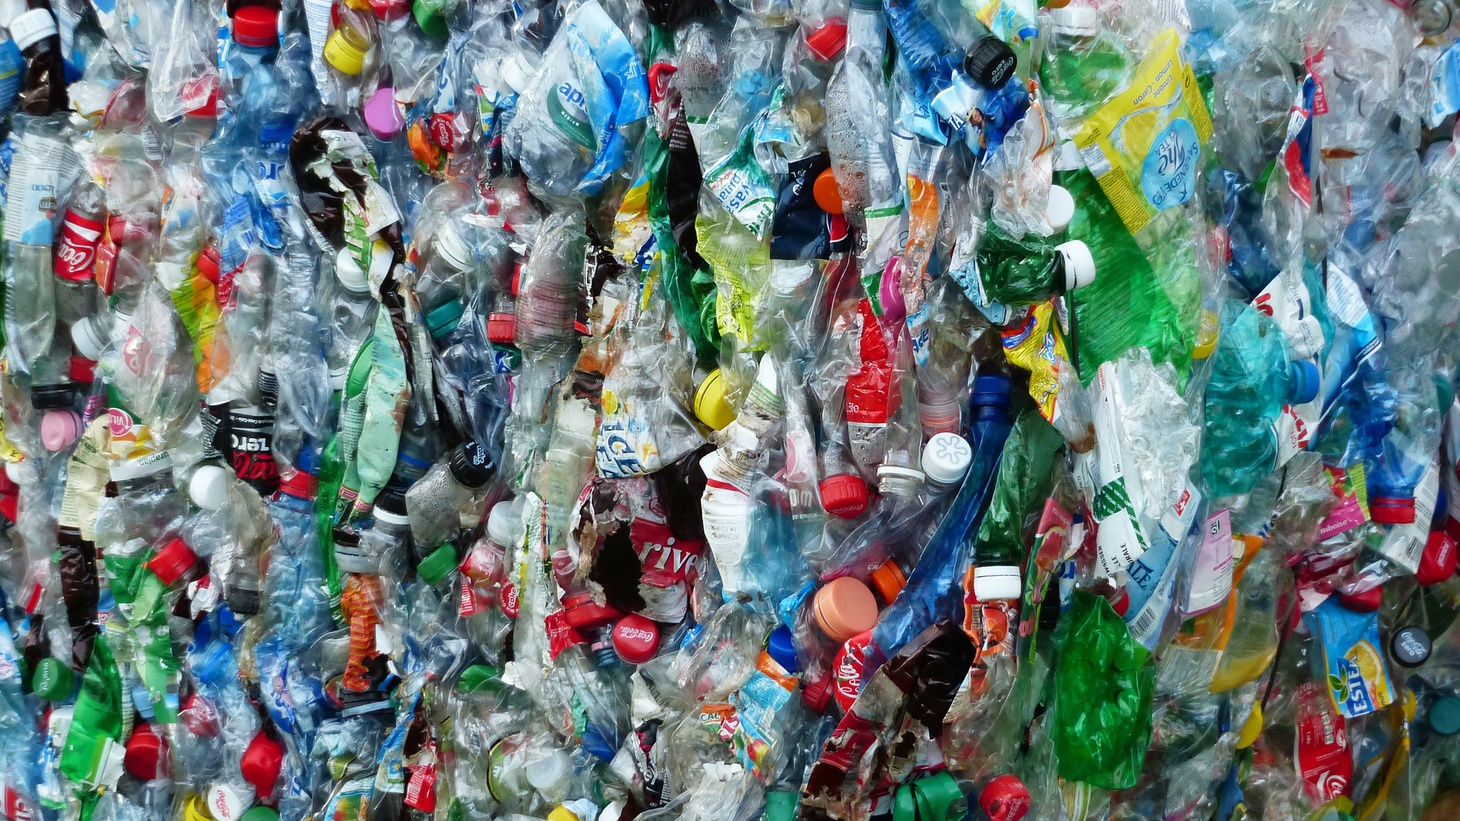 Mandatory recycling has become a way of life in more and more places, but critics dismiss it as an easy way for politicians to make guilty consumers feel better about themselves. We hear both sides as the holiday season gets underway.